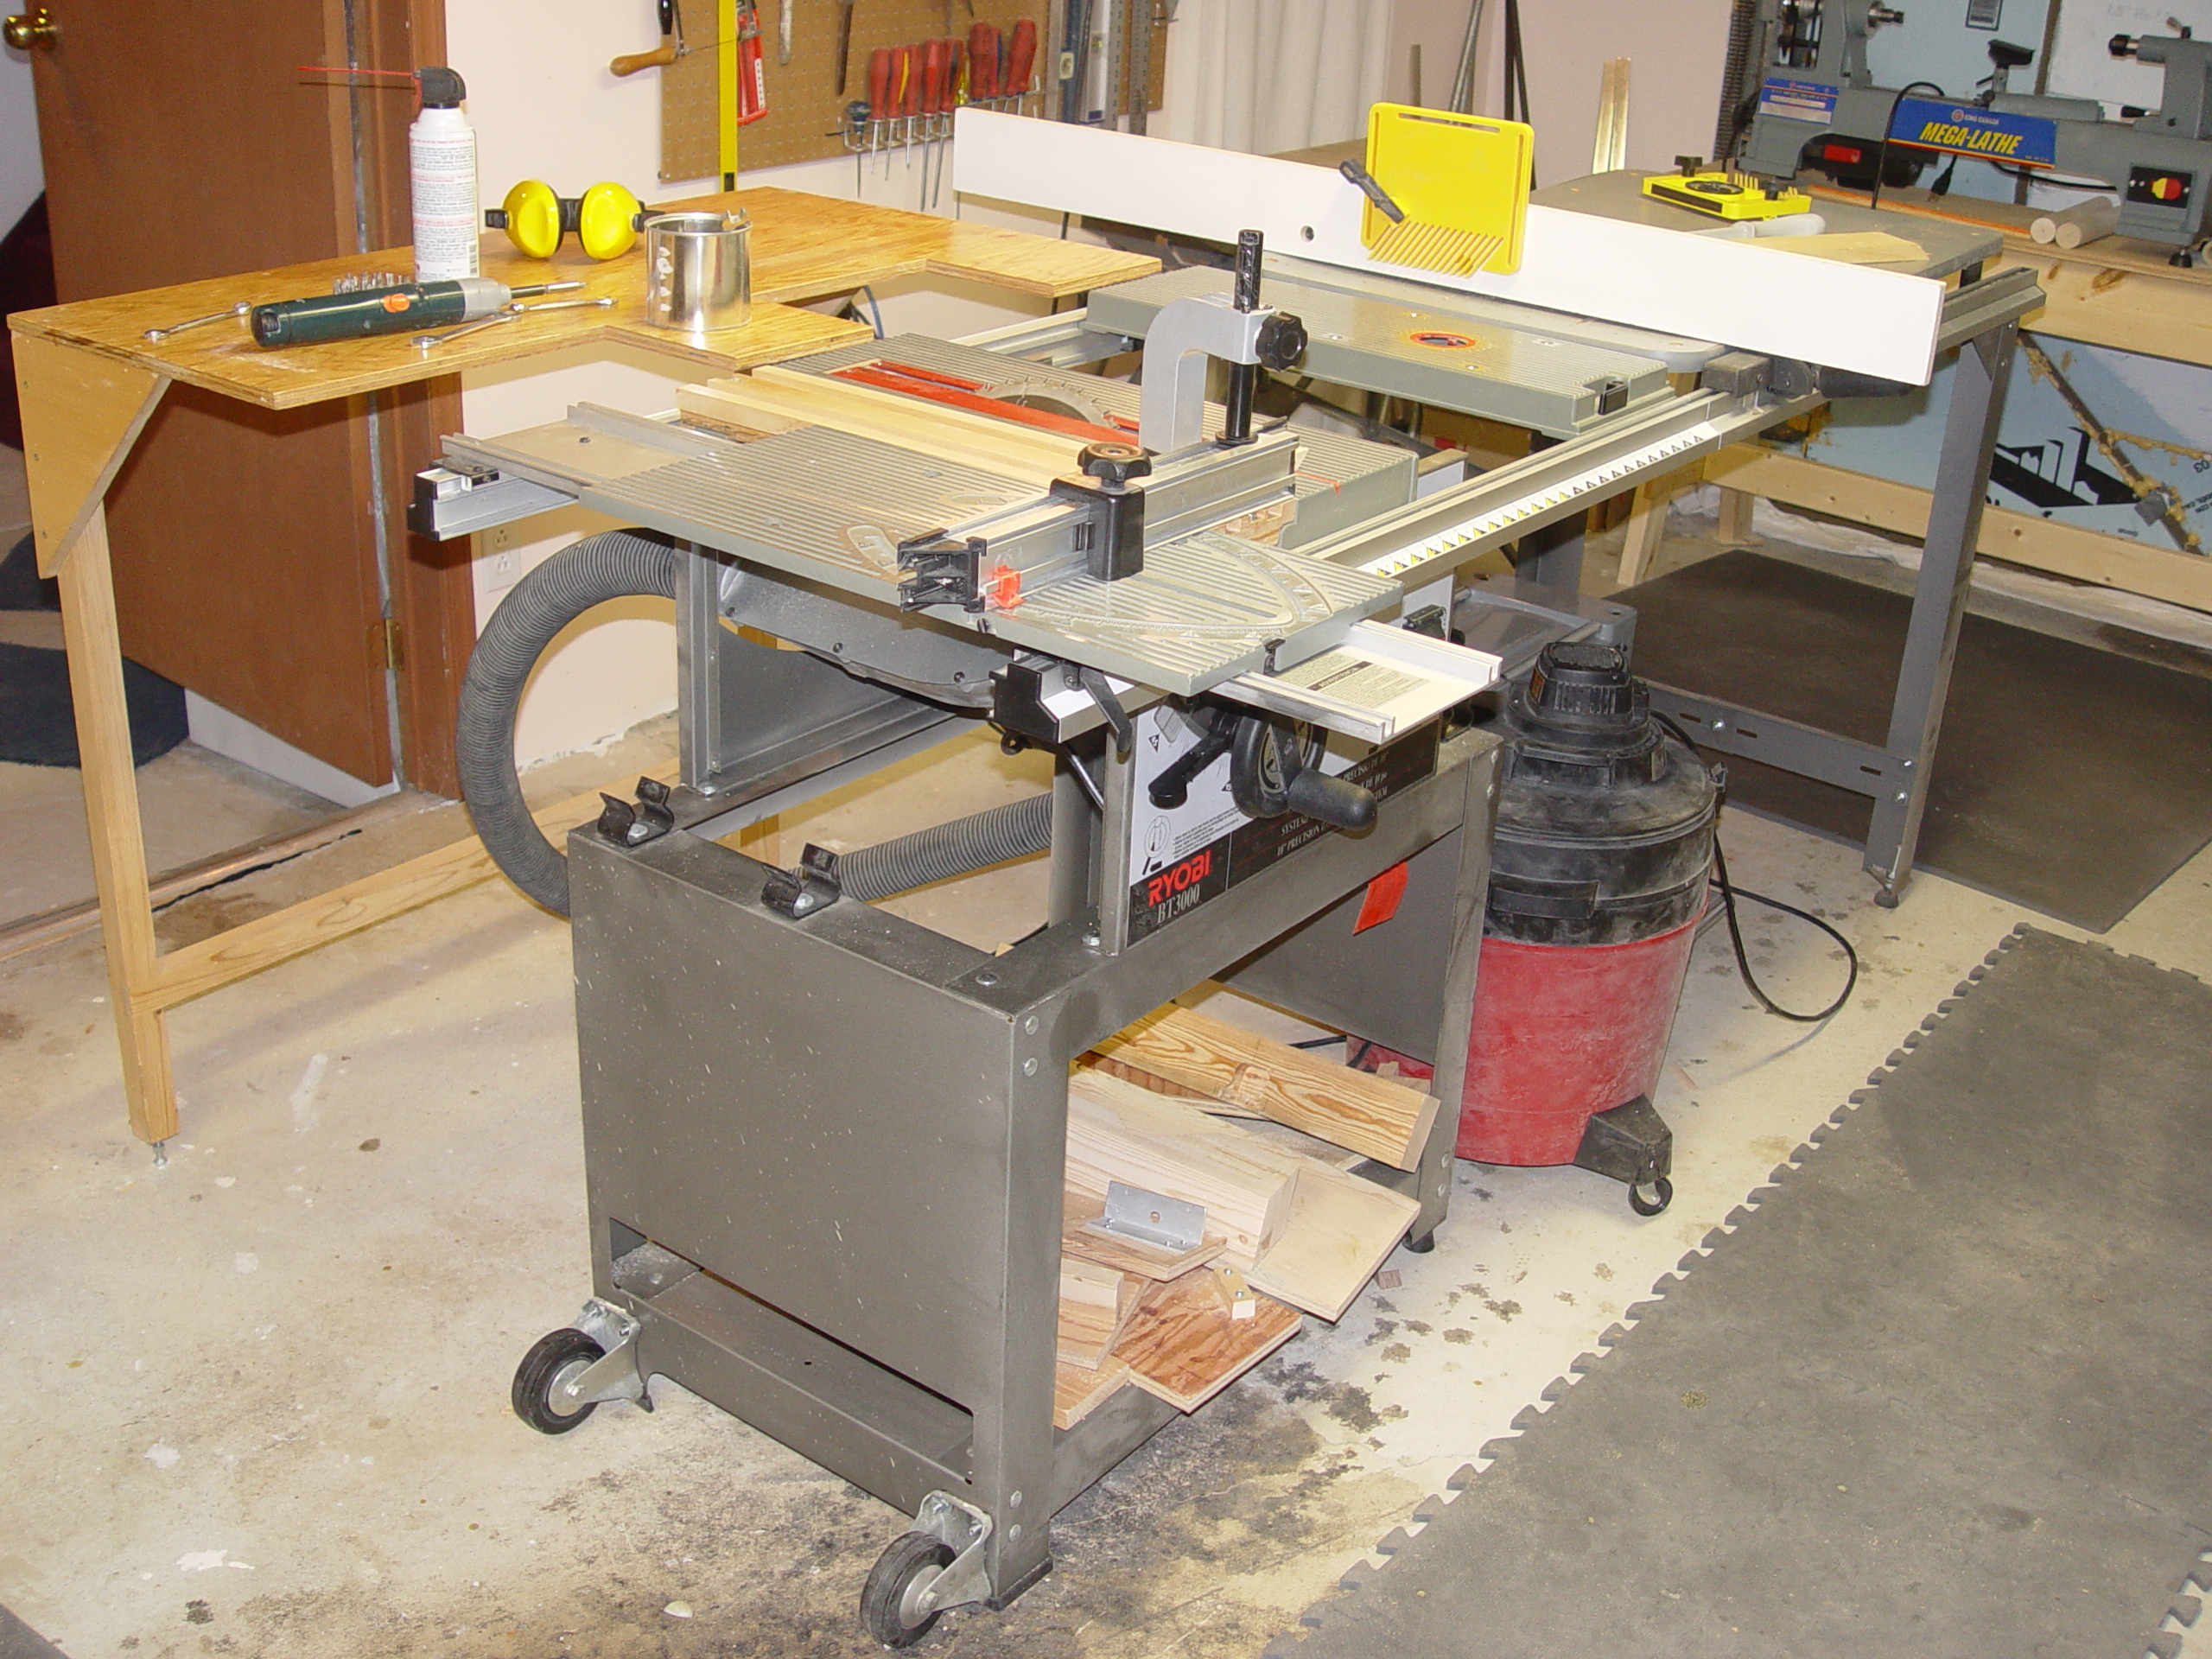 Jewel boxes of bradford products table saw the ryobi bt3000sx table saw has a greentooth Images